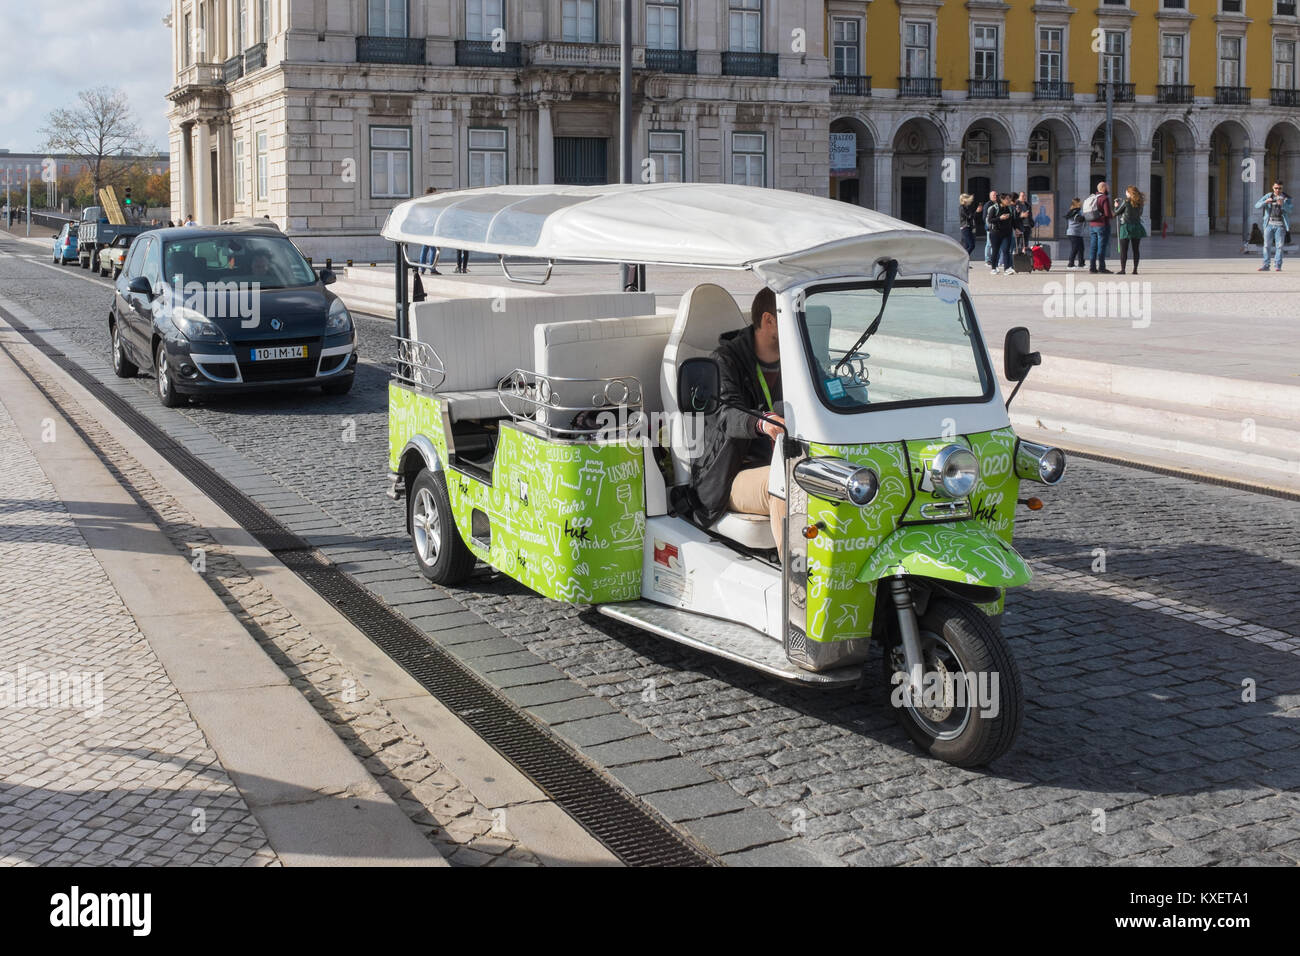 Eco-friendly tuktuk giving tourists guided tour around Lisbon, Portugal - Stock Image